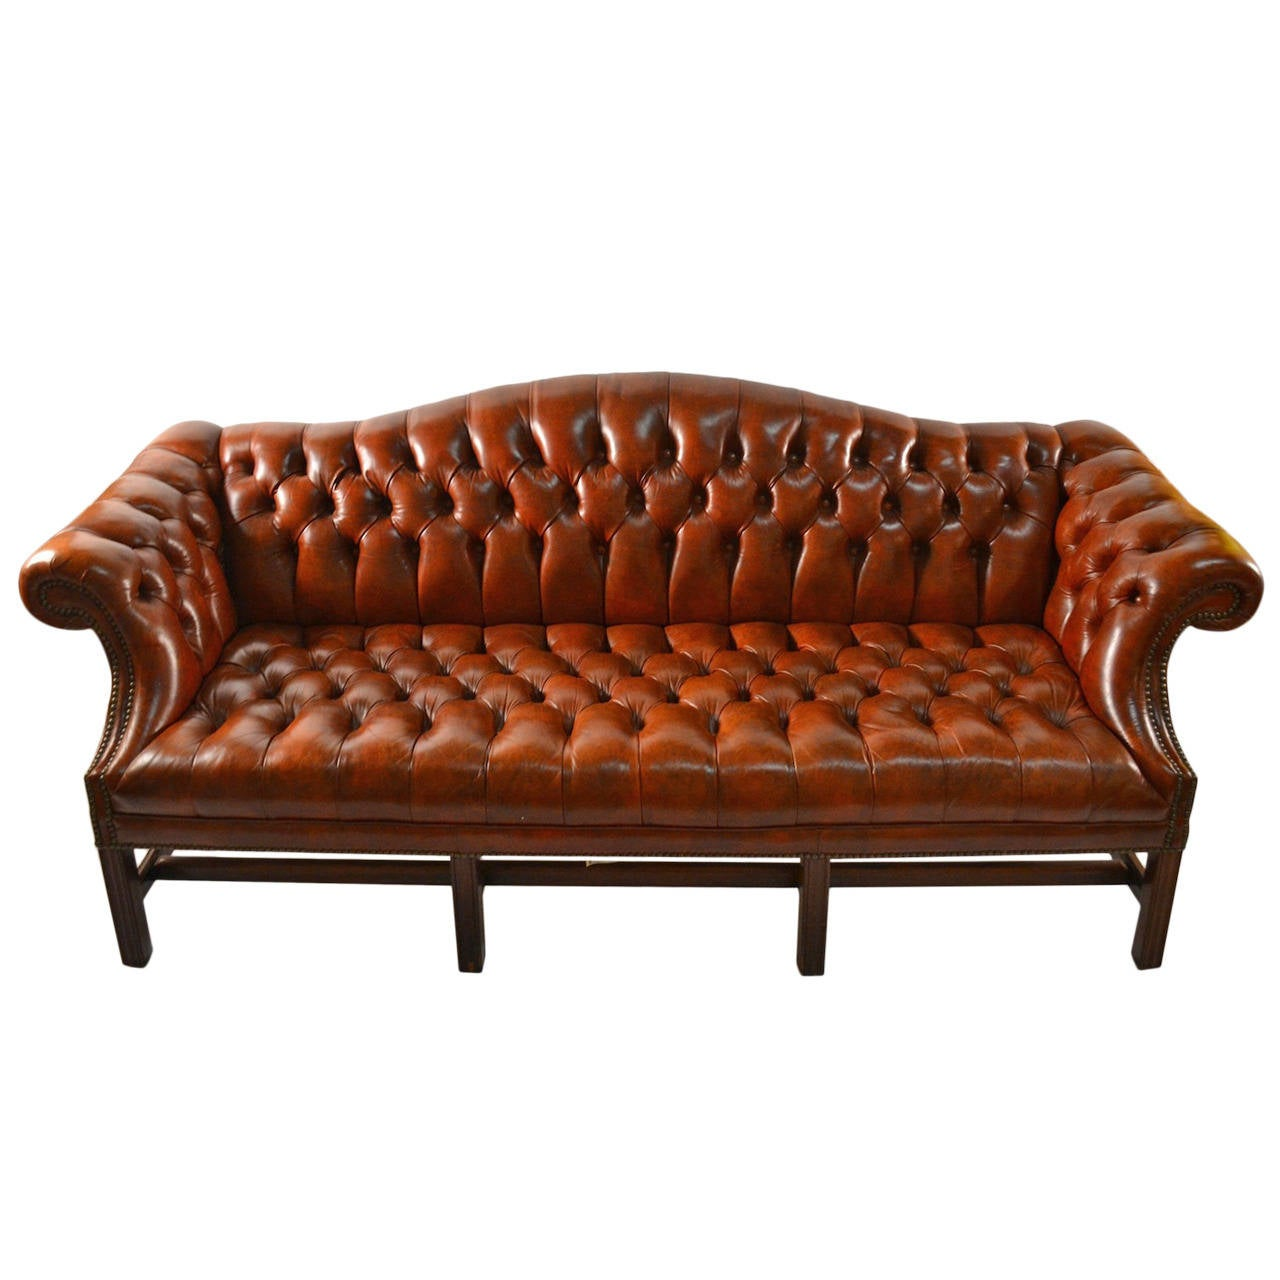 Leather Camel Back Sofa At 1stdibs